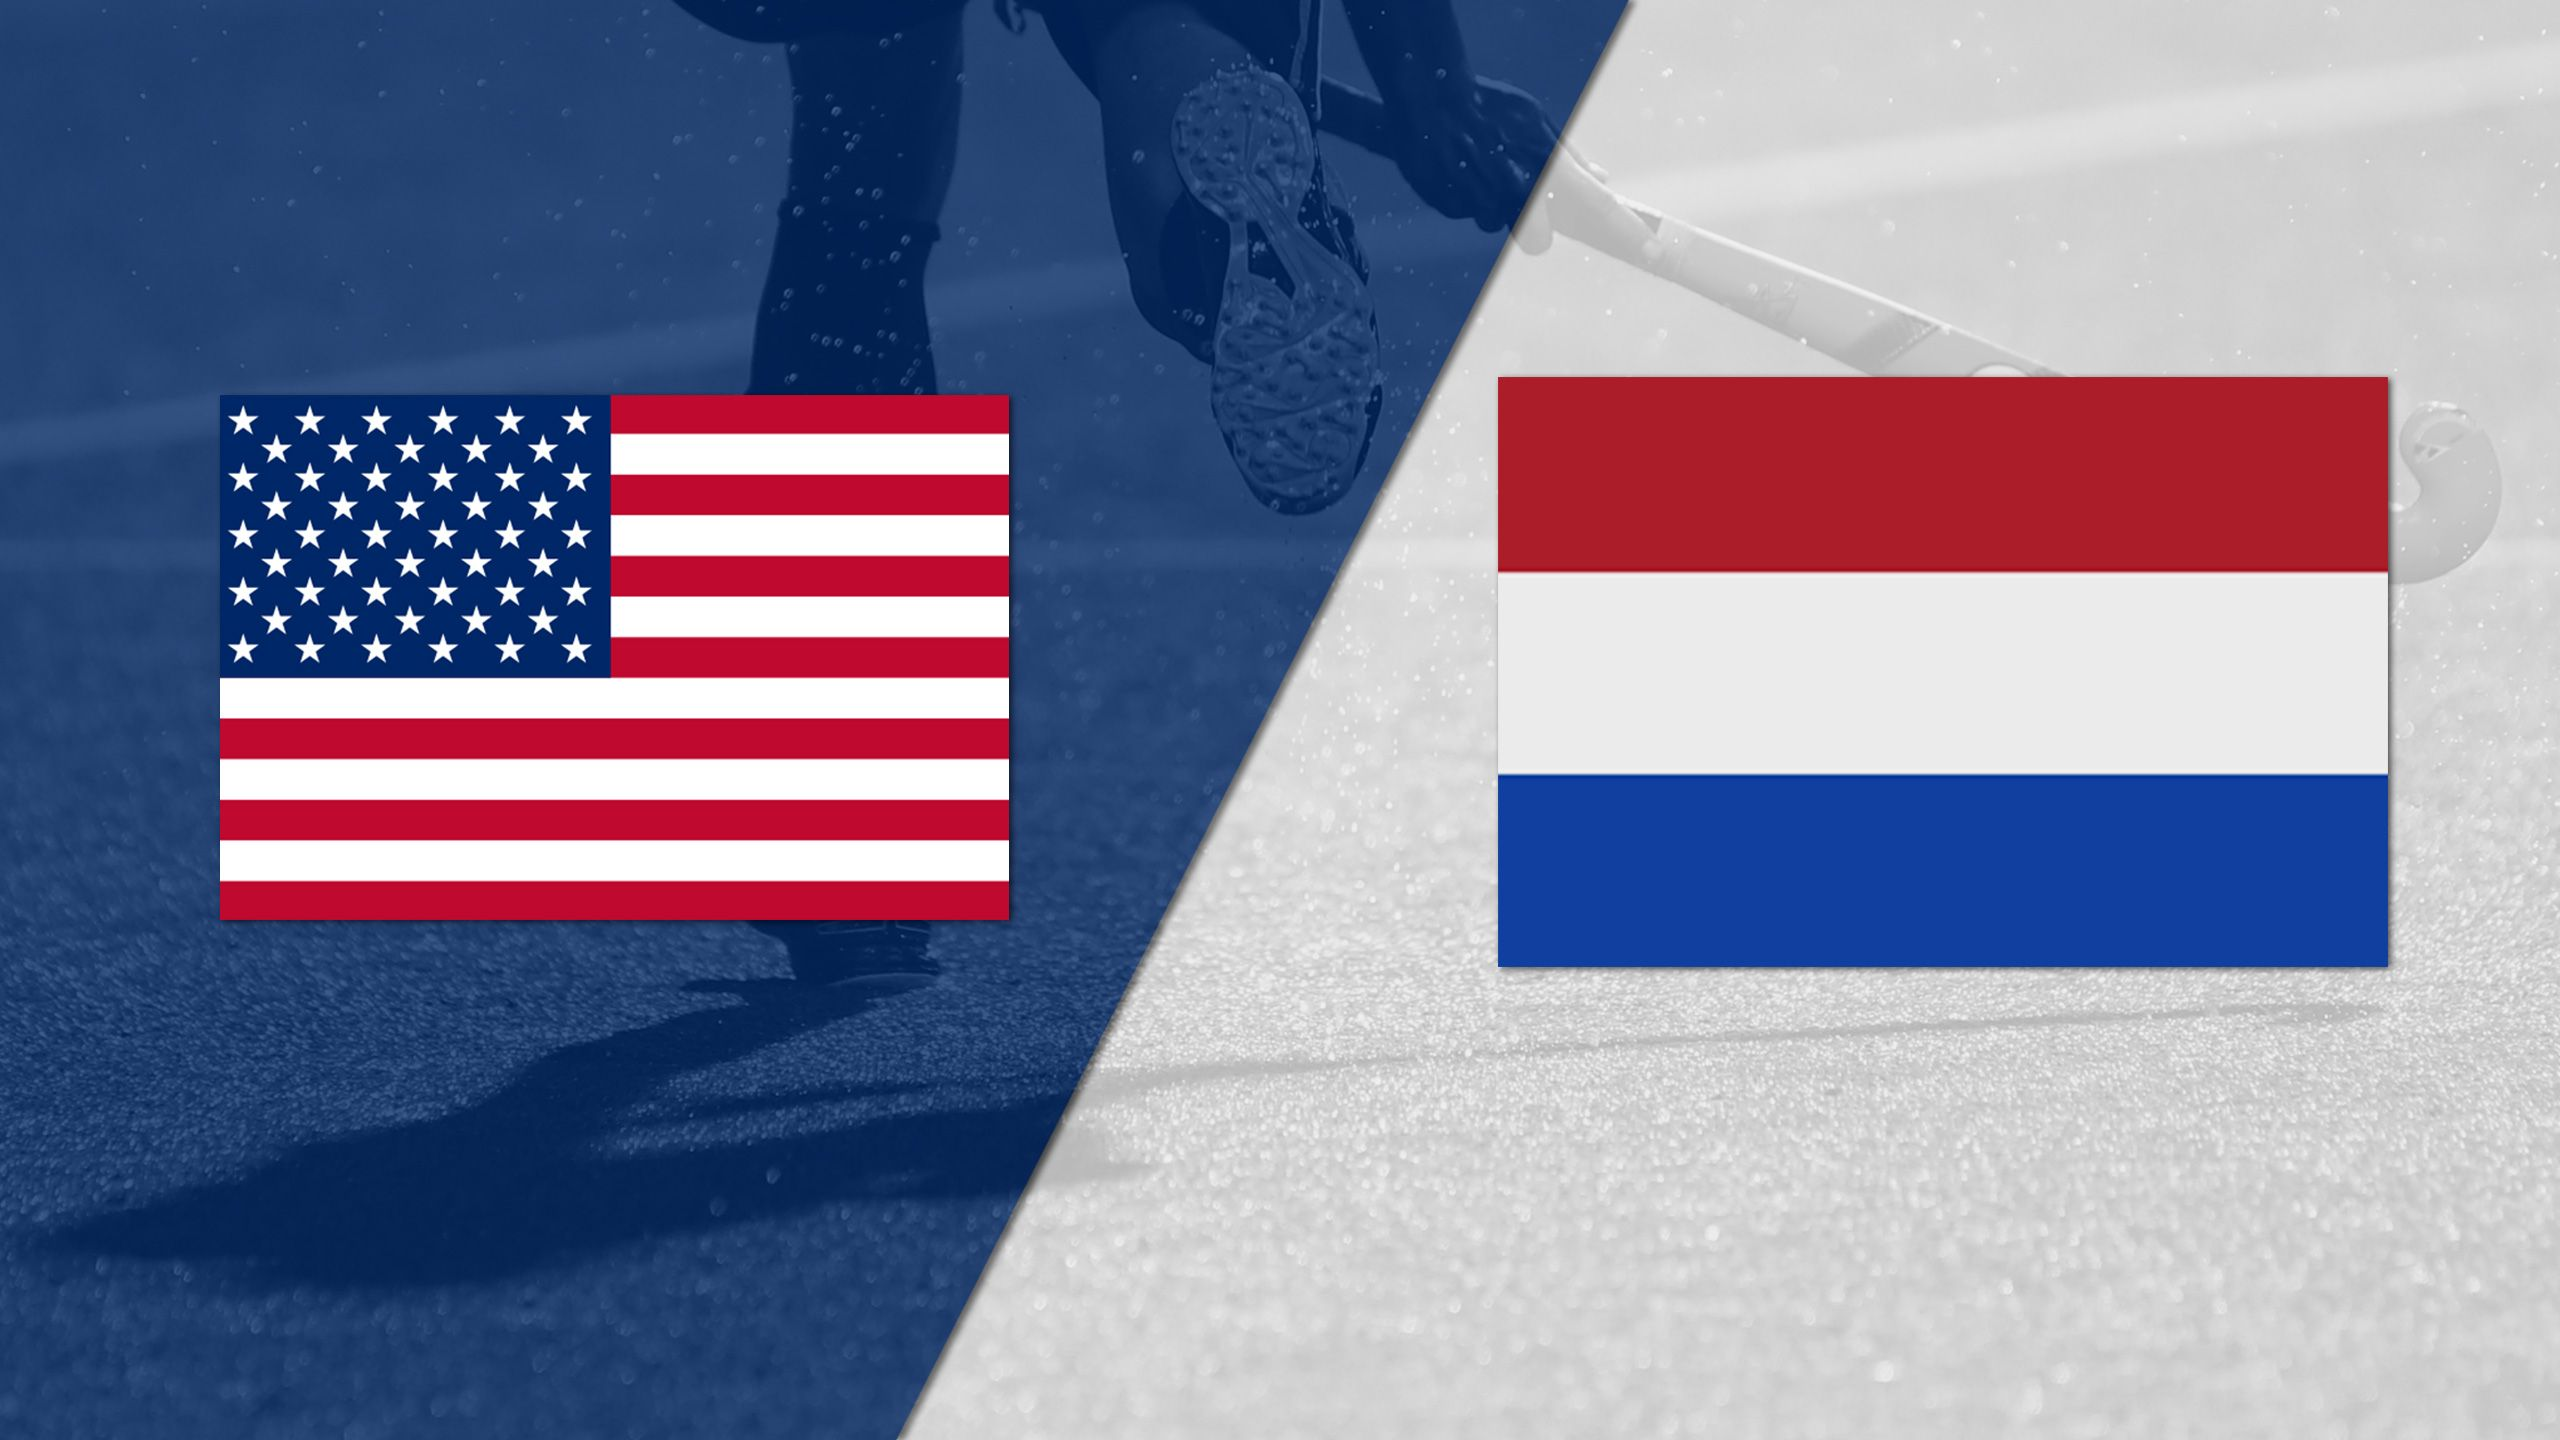 United States vs. Netherlands (Women's FIH World League)